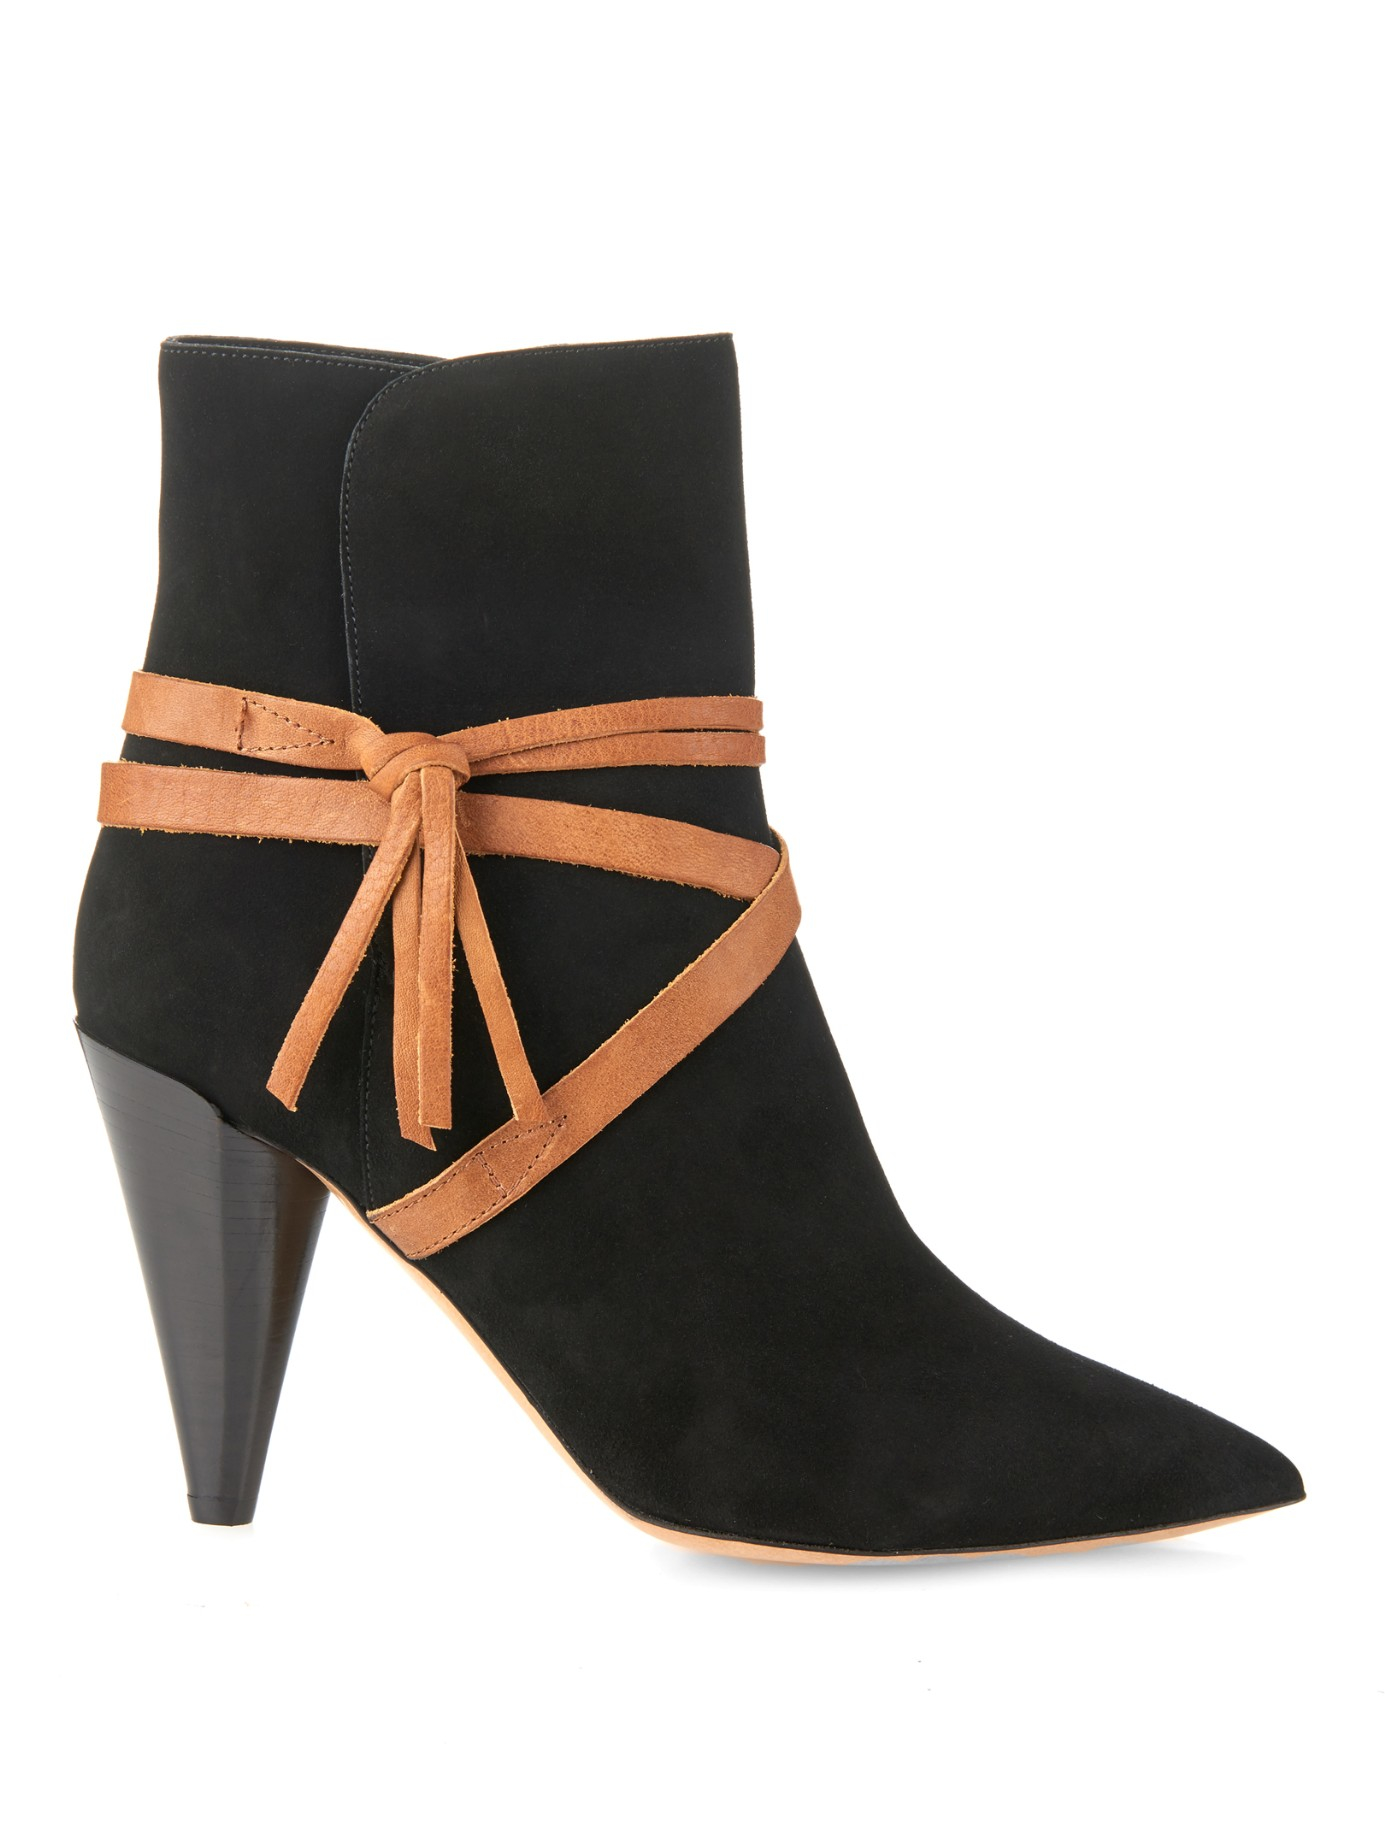 isabel marant nerys suede and leather ankle boots in black black tan save 60 lyst. Black Bedroom Furniture Sets. Home Design Ideas